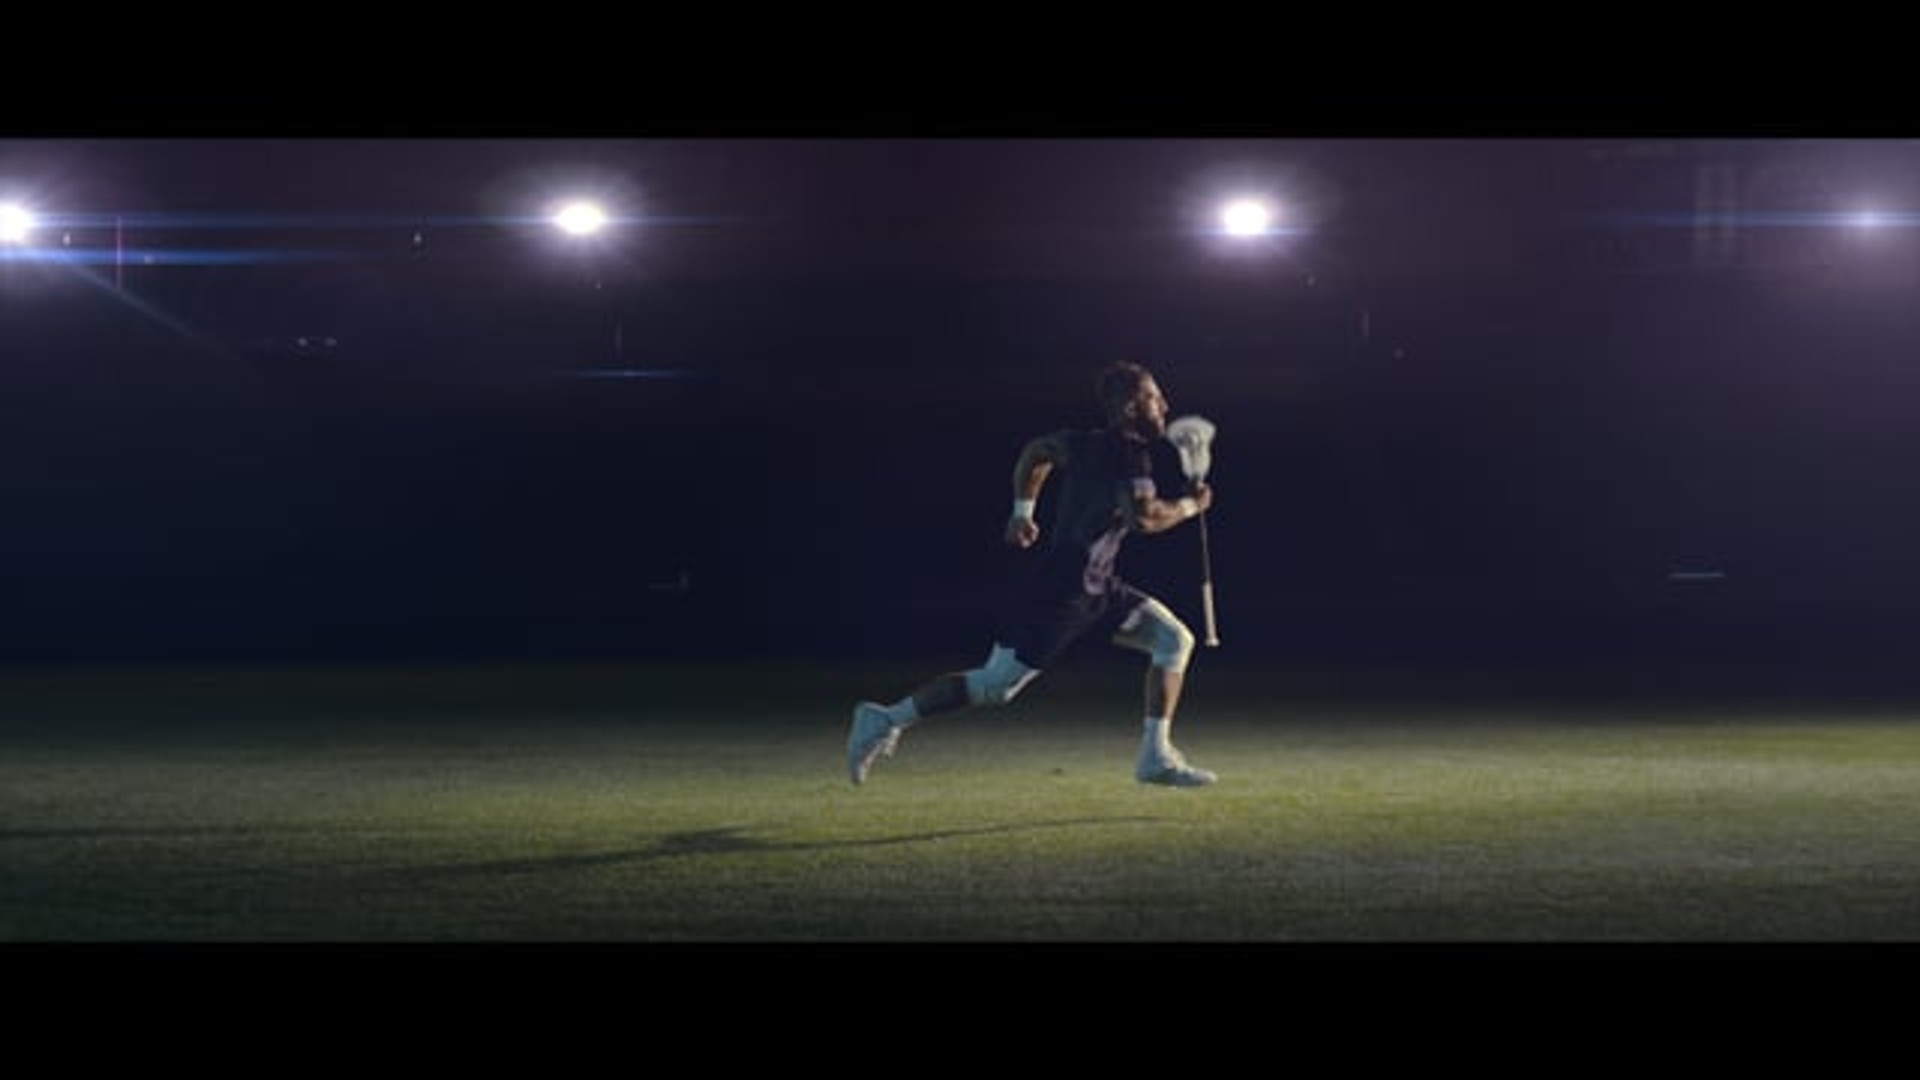 New Balance ad by JJ Miller Productions